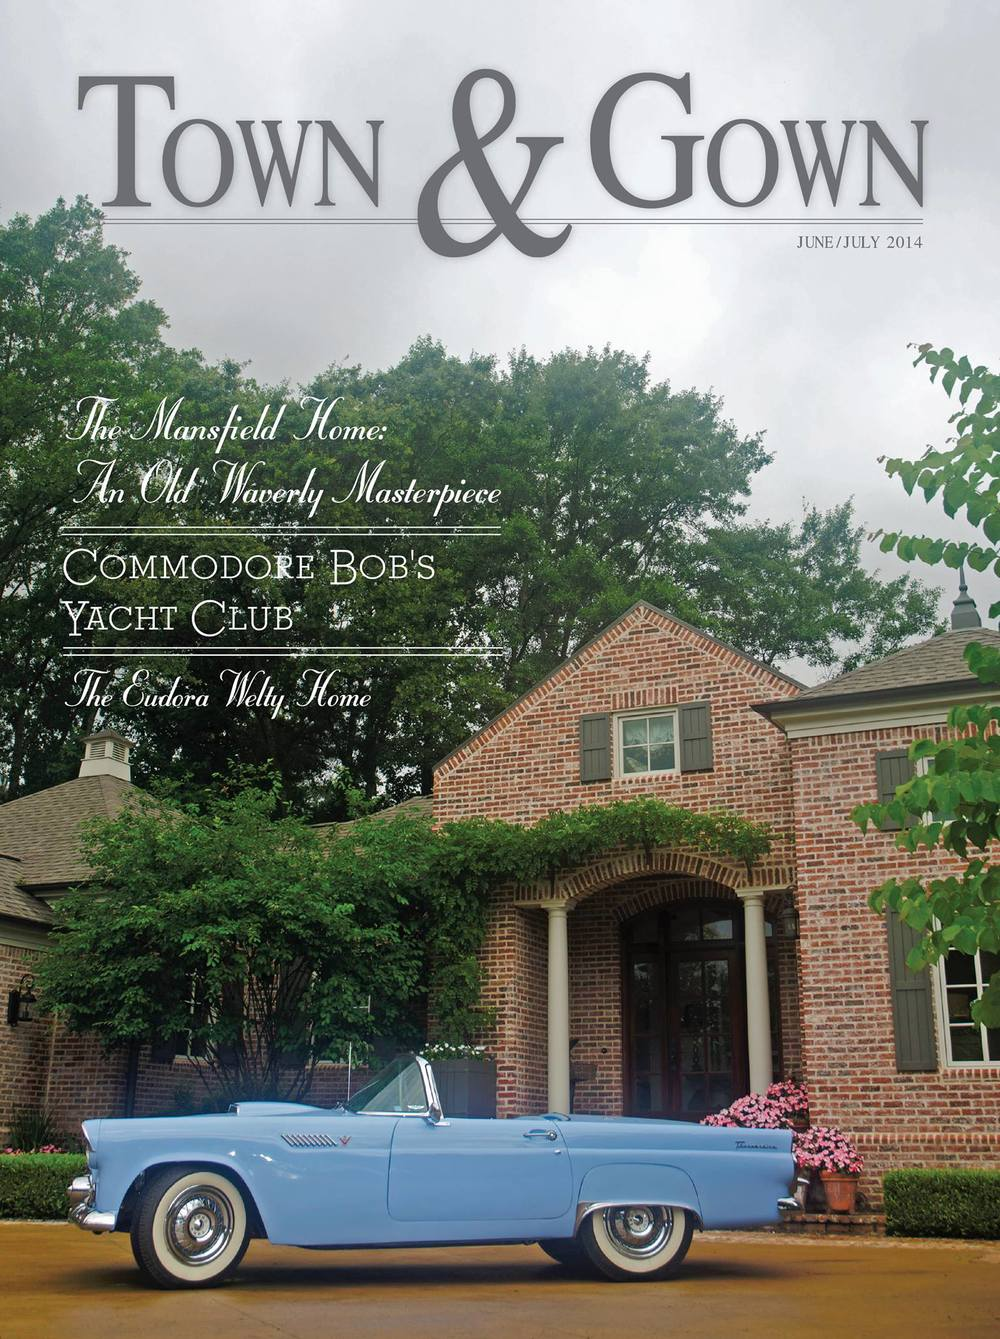 Image from Town & Gown Magazine